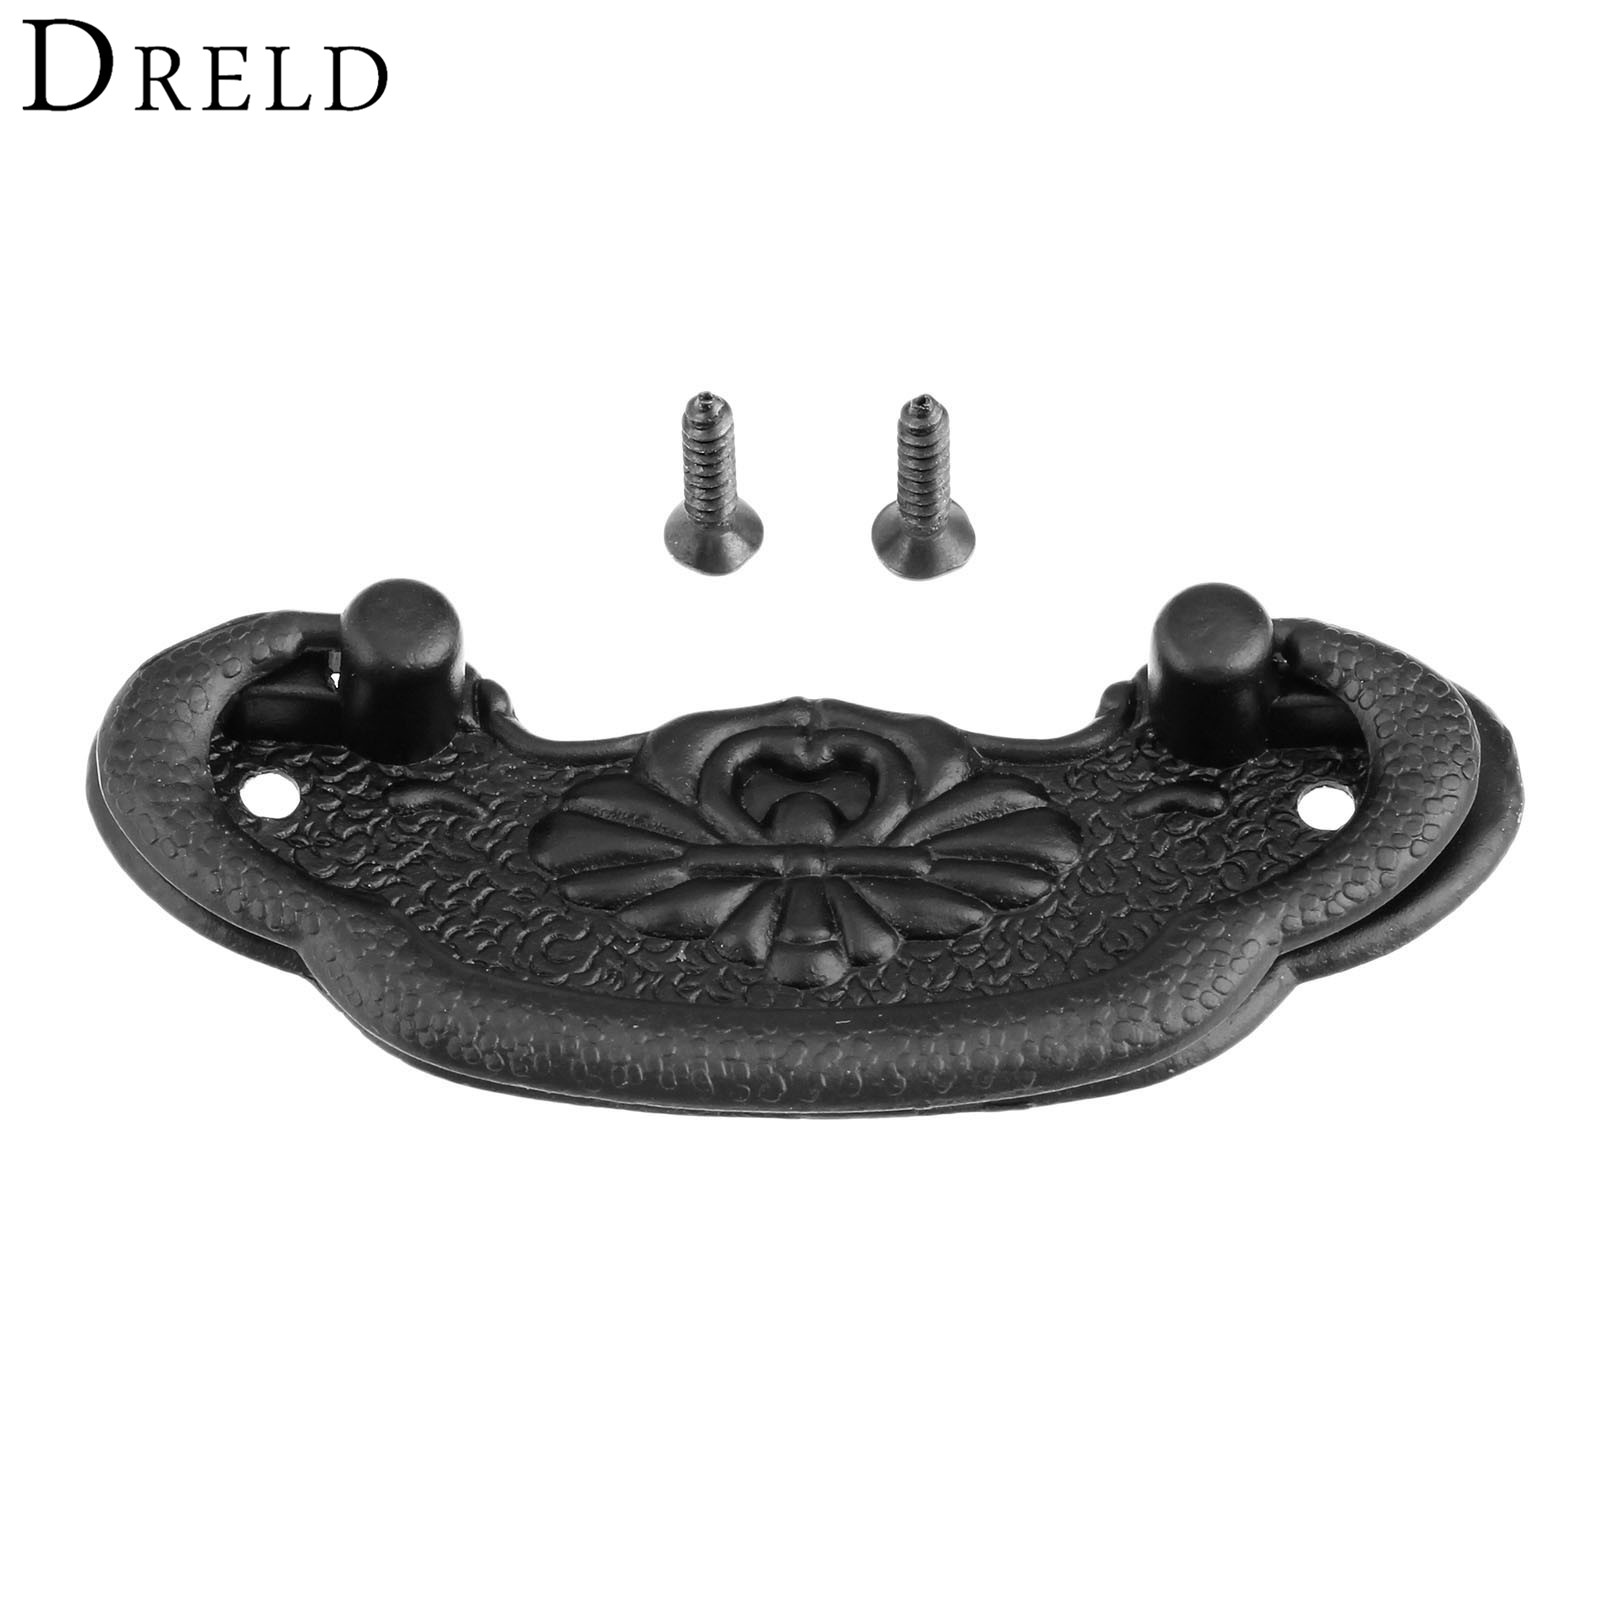 DRELD 1Pc Antique Furniture Handle Black Cabinet Knobs and Handles Kitchen Drawer Cupboard Pull Door Handles Furniture Fittings